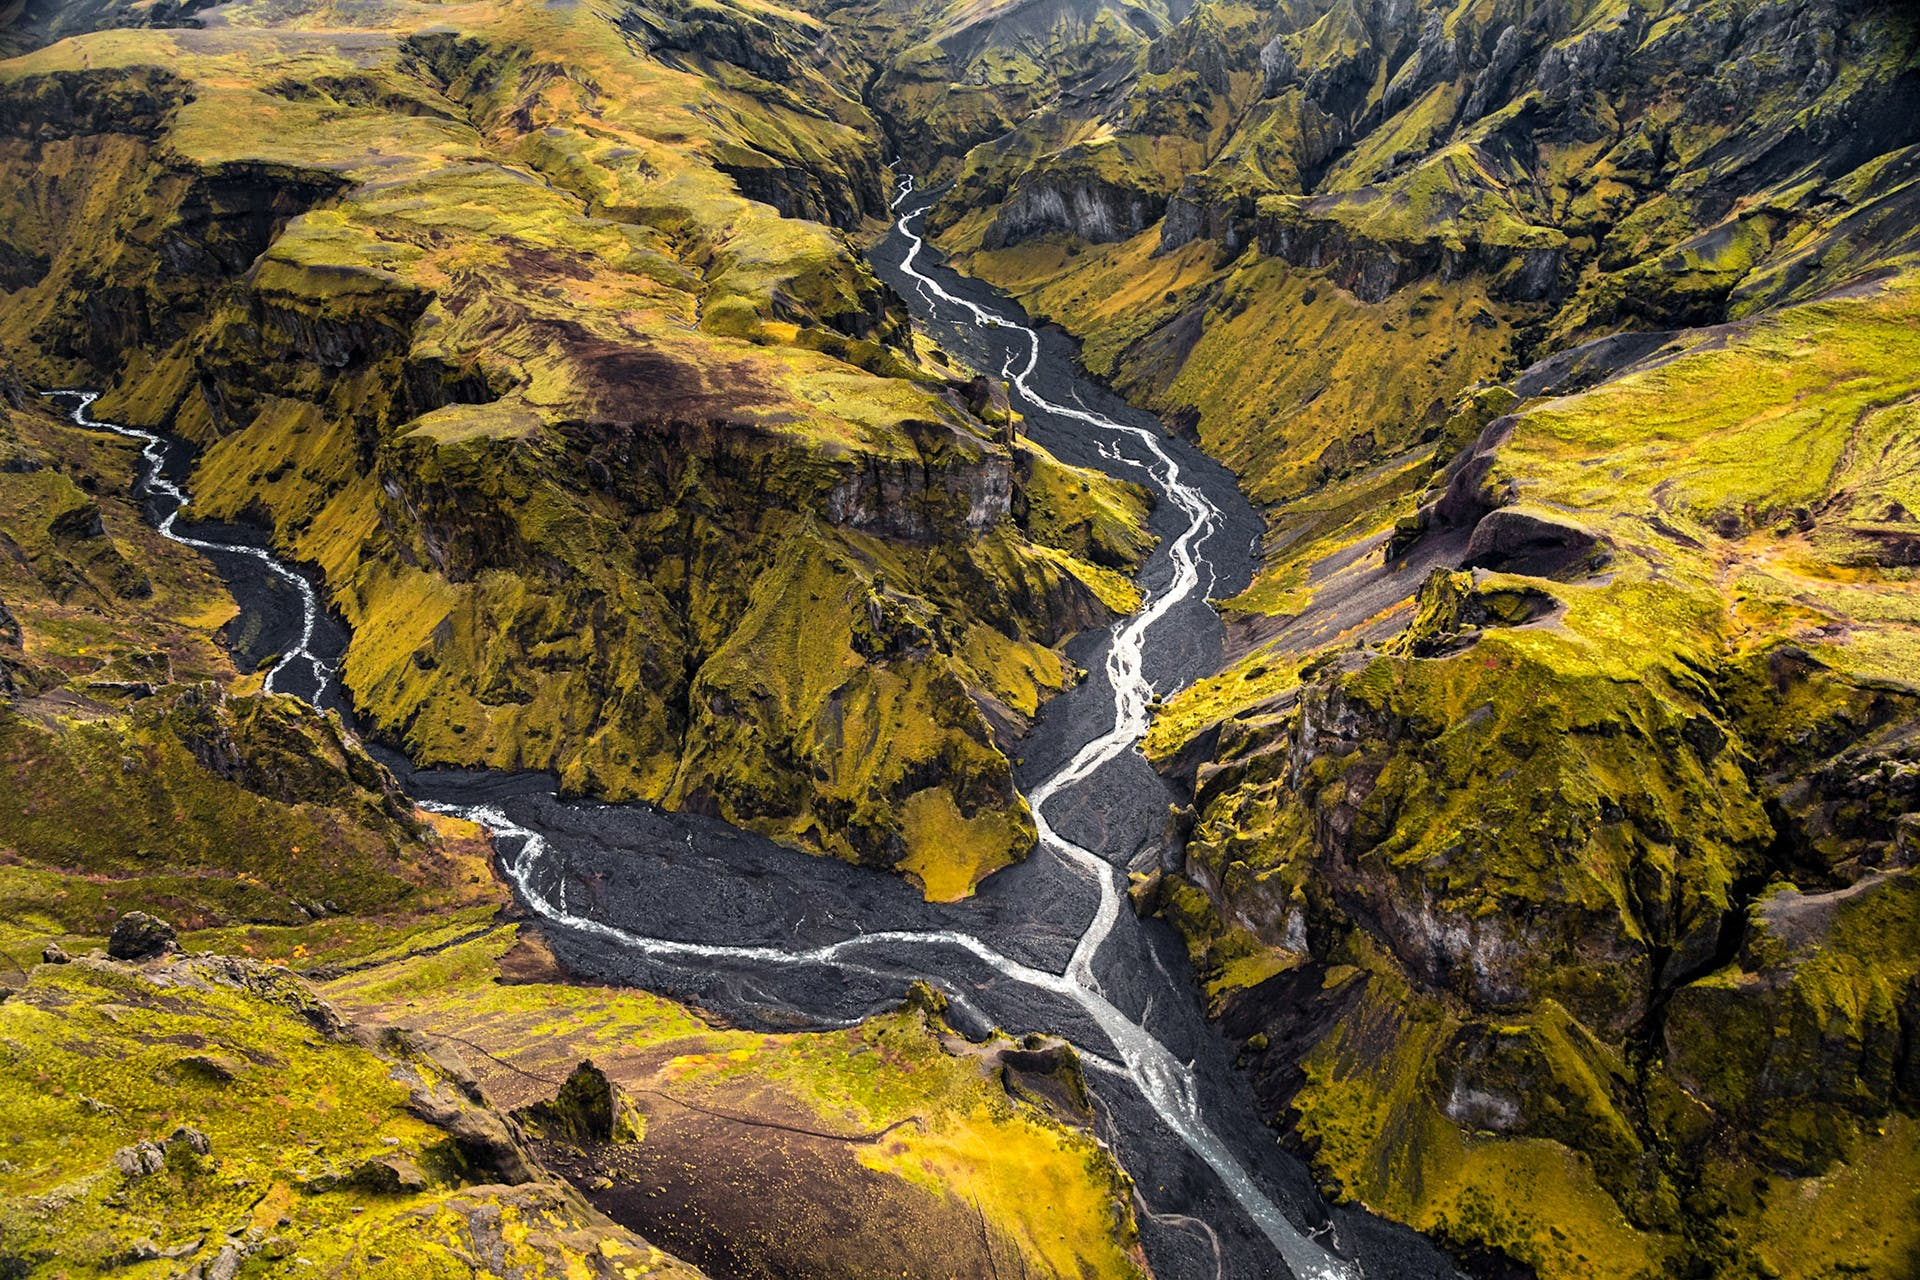 Landscape photograph of Iceland's nature by Jeroen